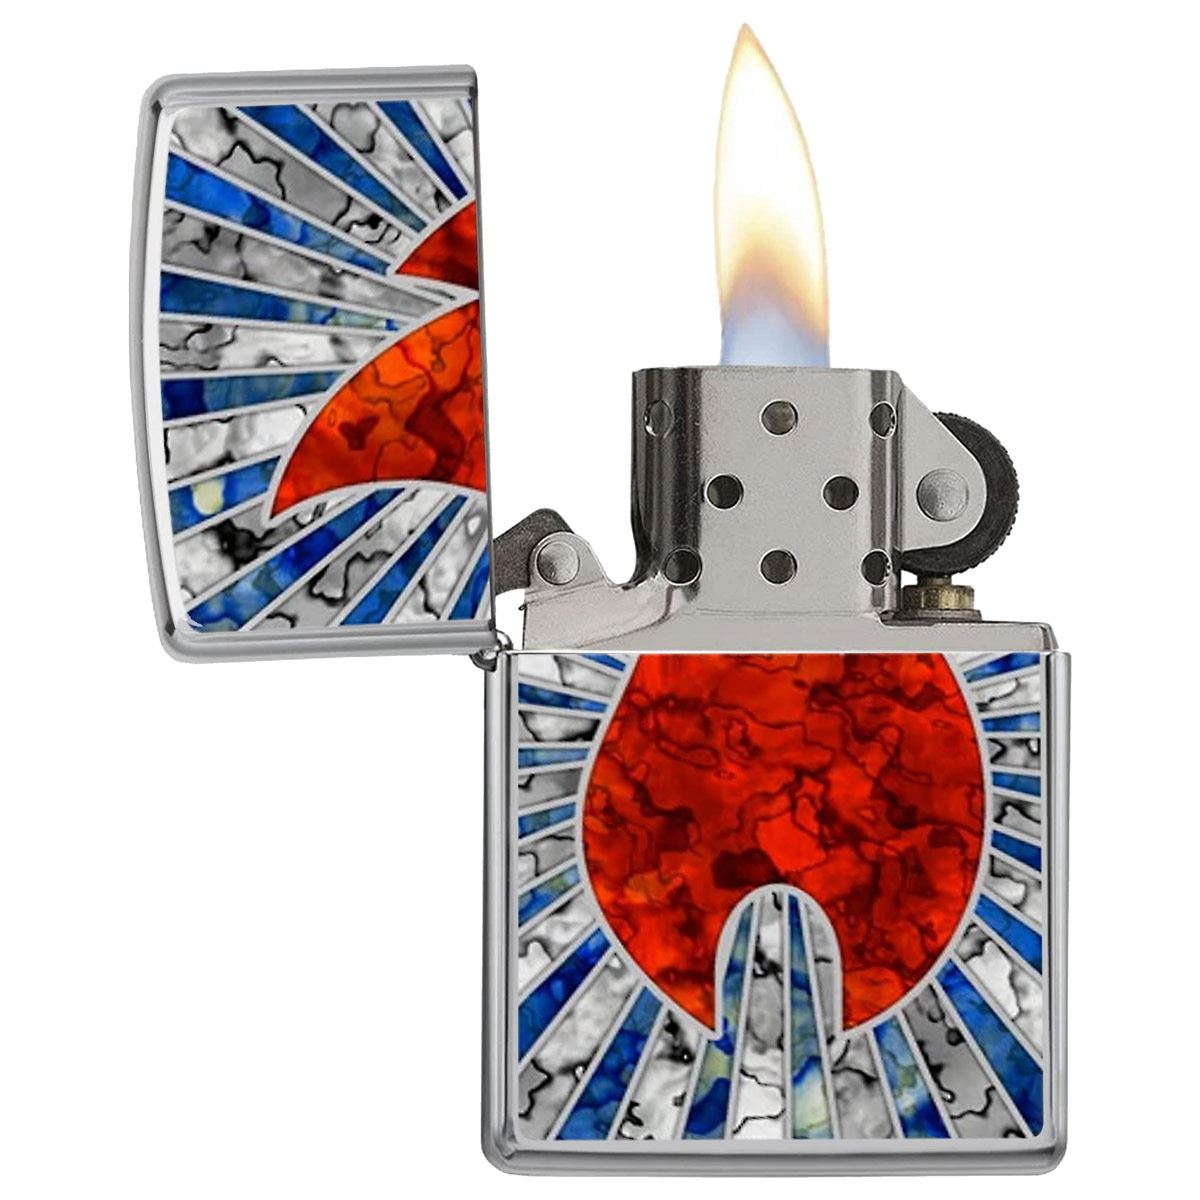 Encendedor ZIPPO Fall Price fighter llama roja